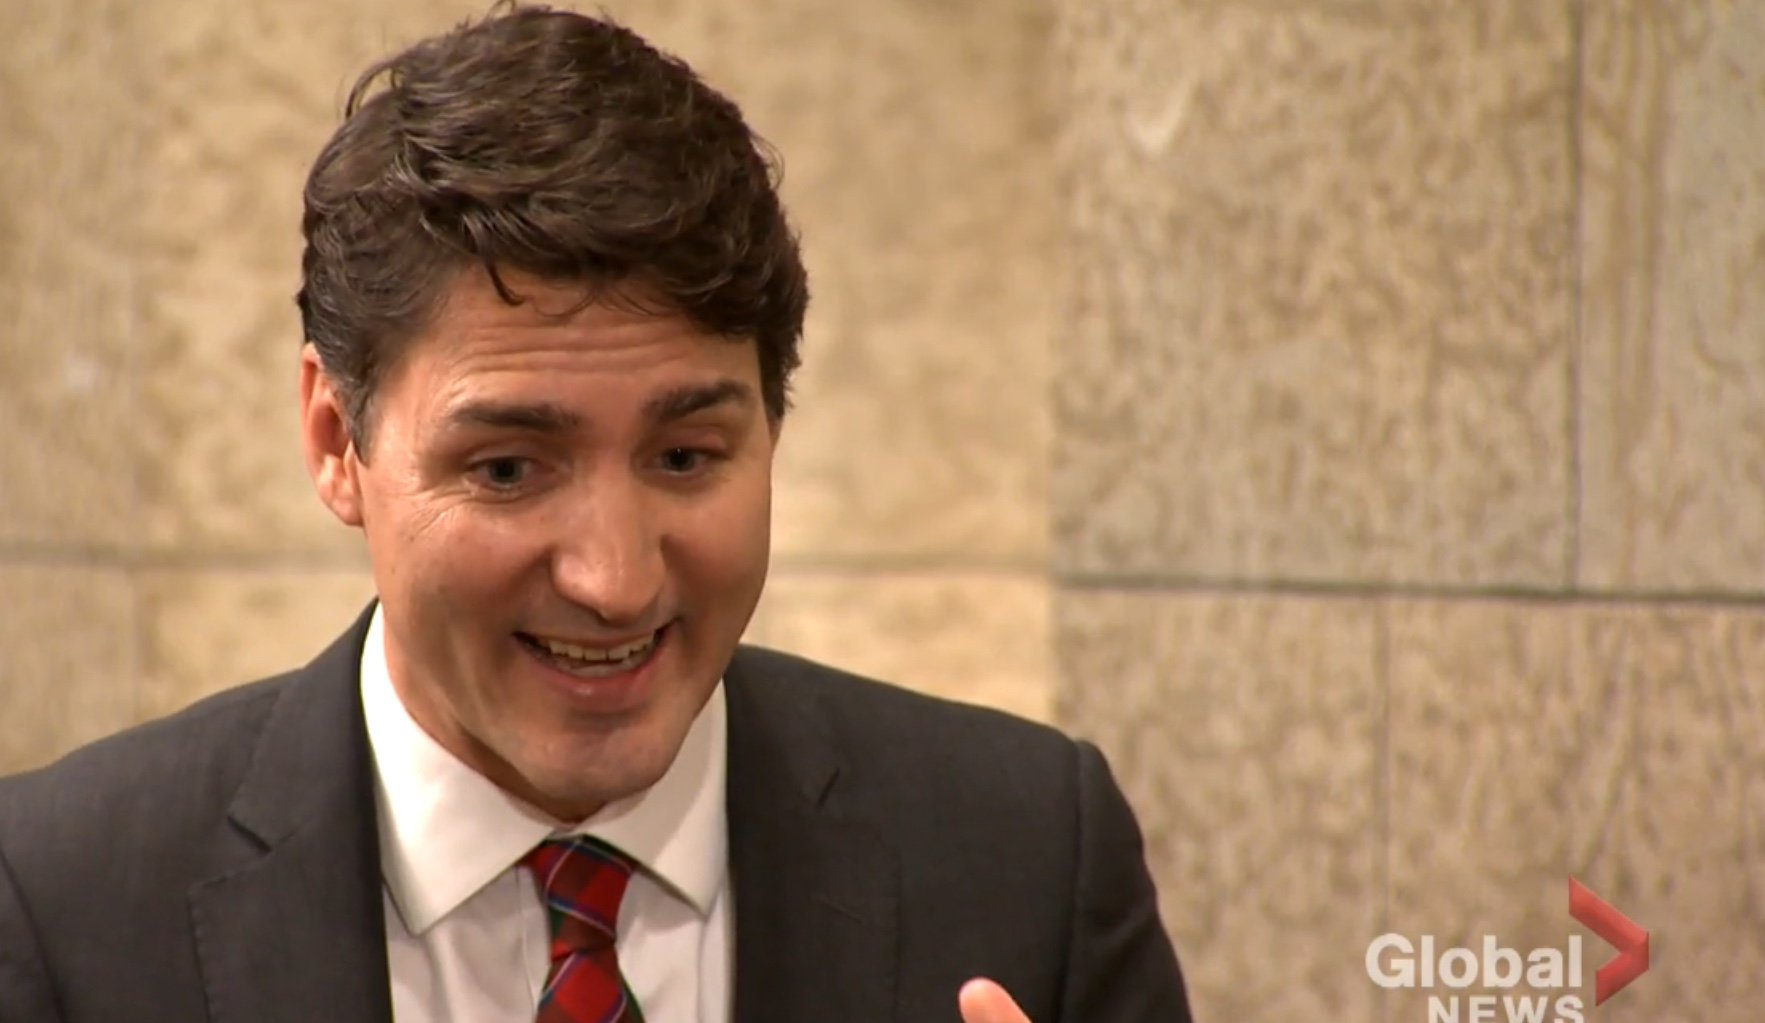 Canadian Prime Minister Justin Trudeau is interviewed by Global News, Dec. 21, 2018. Global News screenshot.